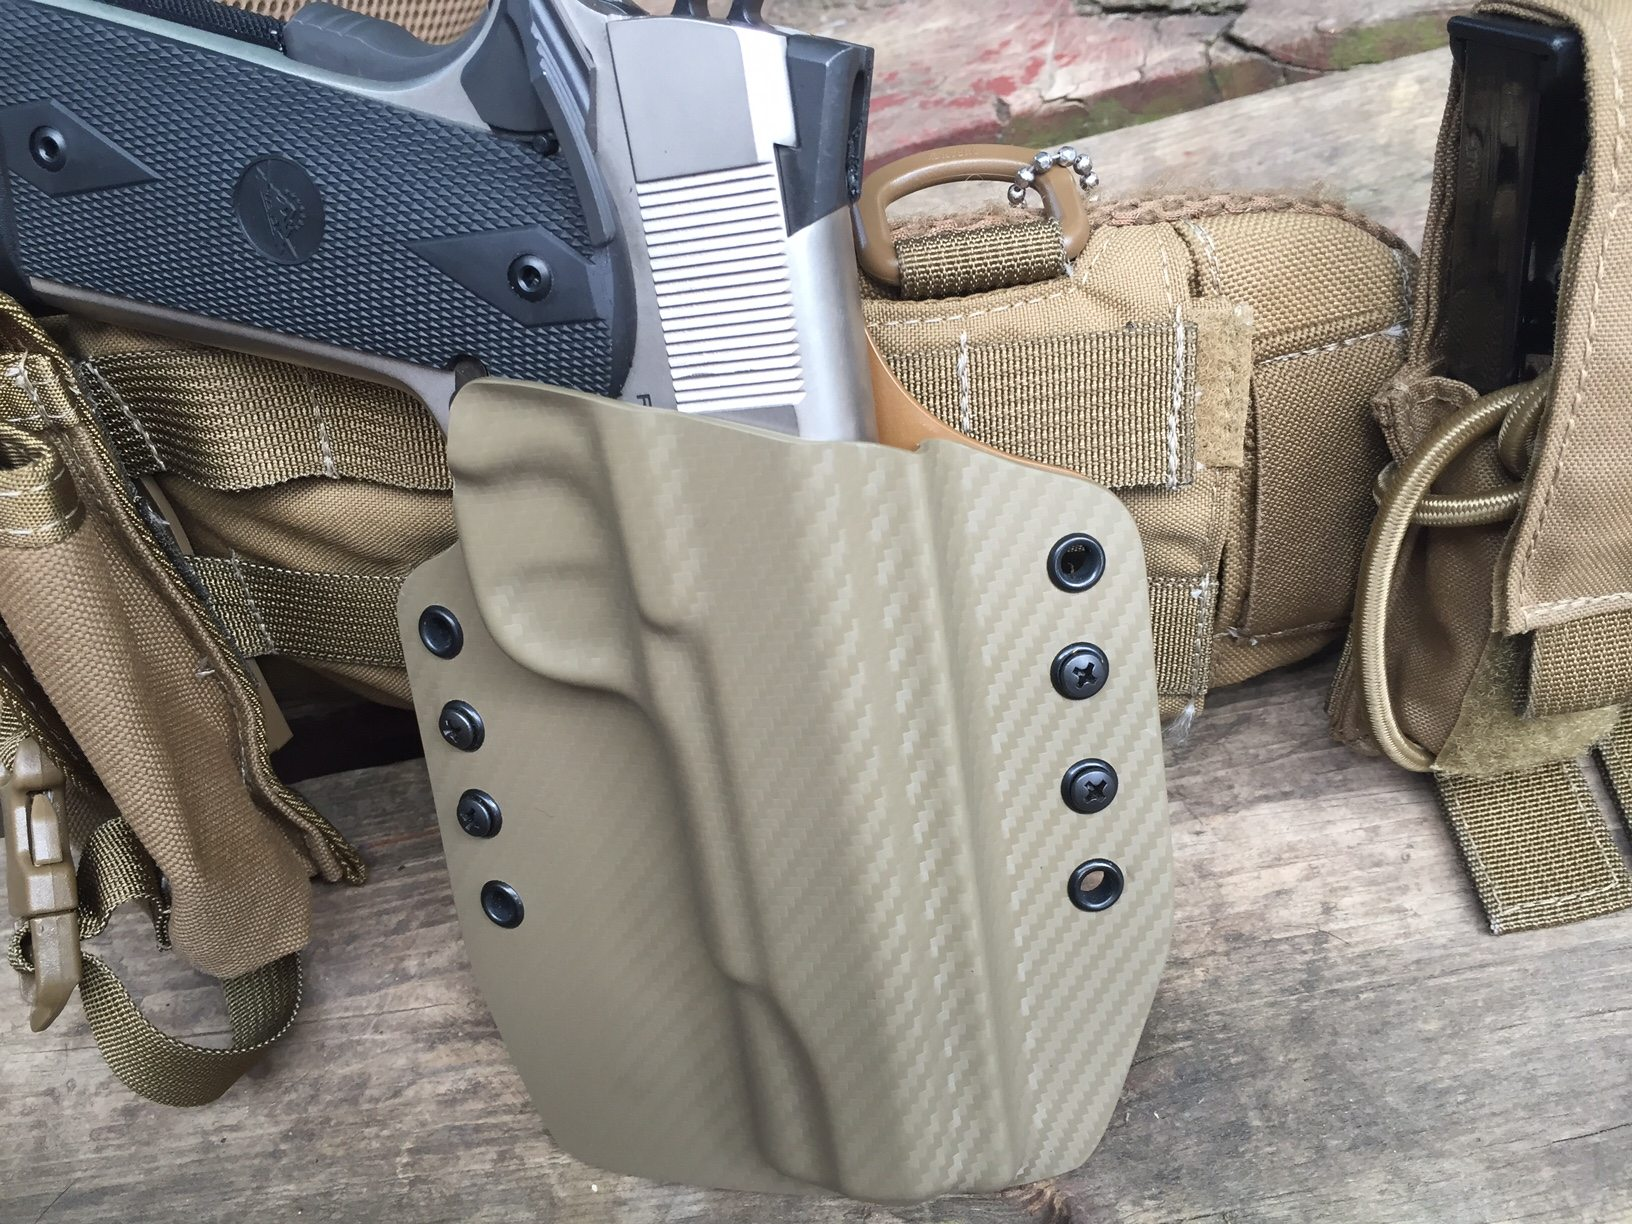 Rock Island Armory 1911, Mec Gar Magazines and More – Spotter Up